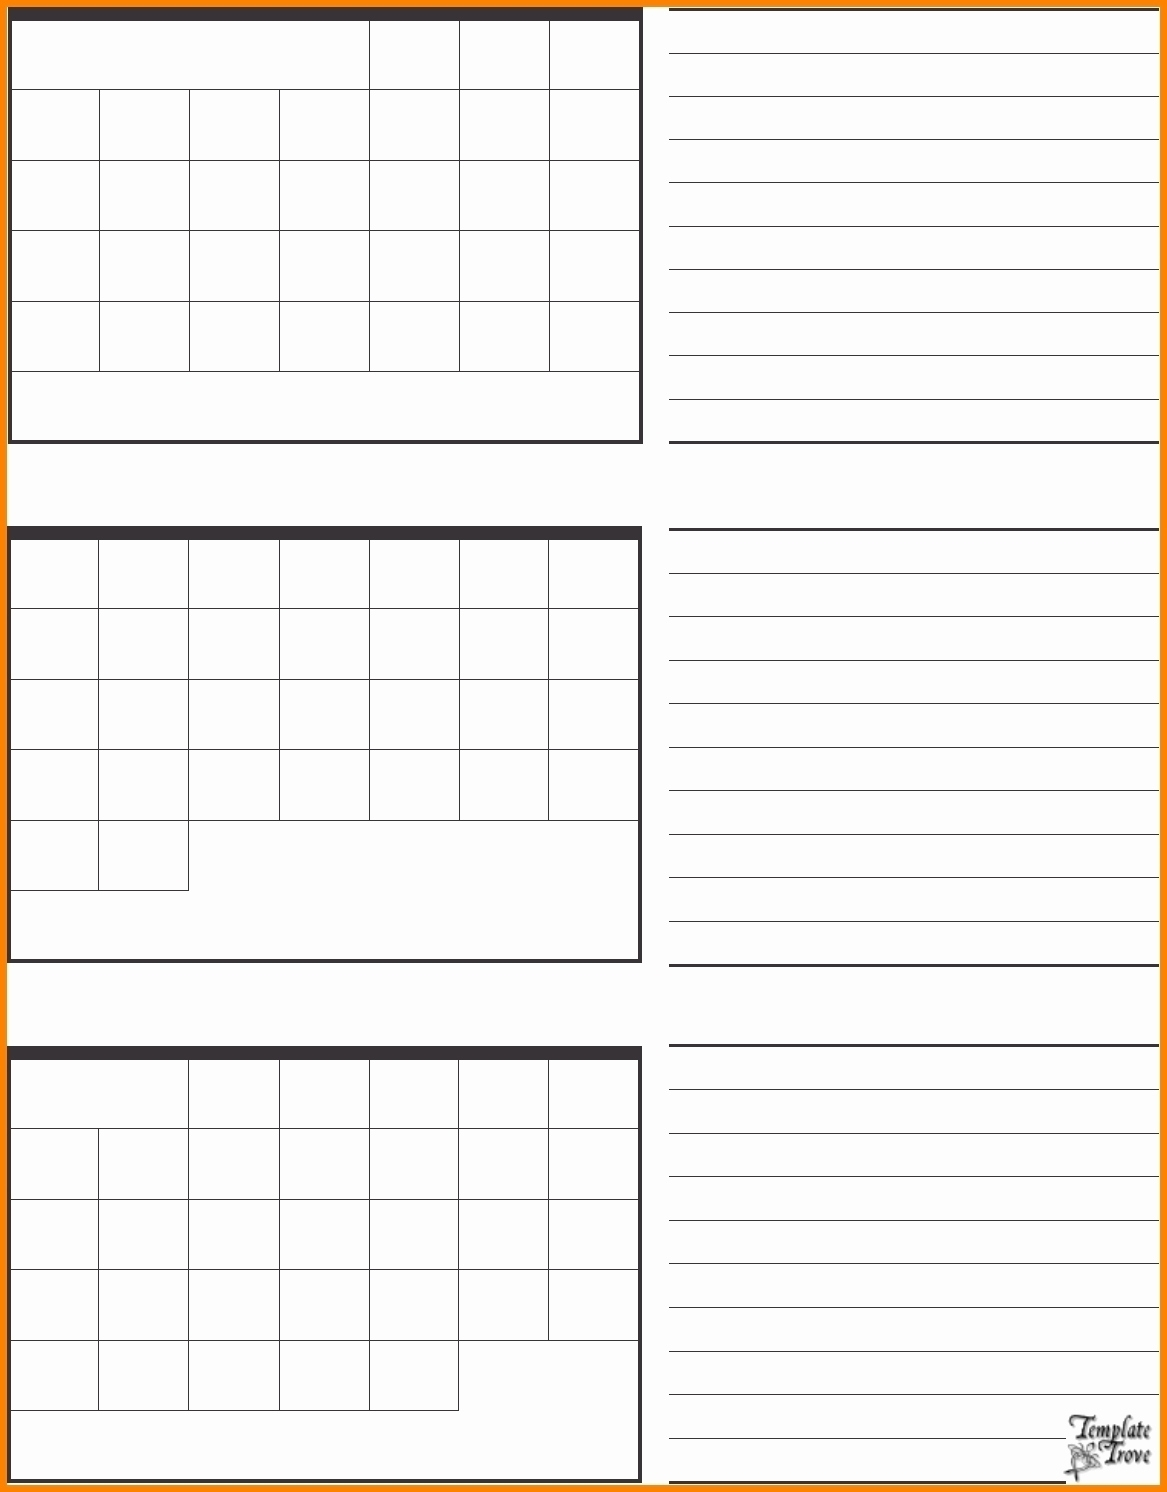 Free 3 Month Calendars To Print | Template Calendar Printable intended for Free 3 Month Calendars To Print